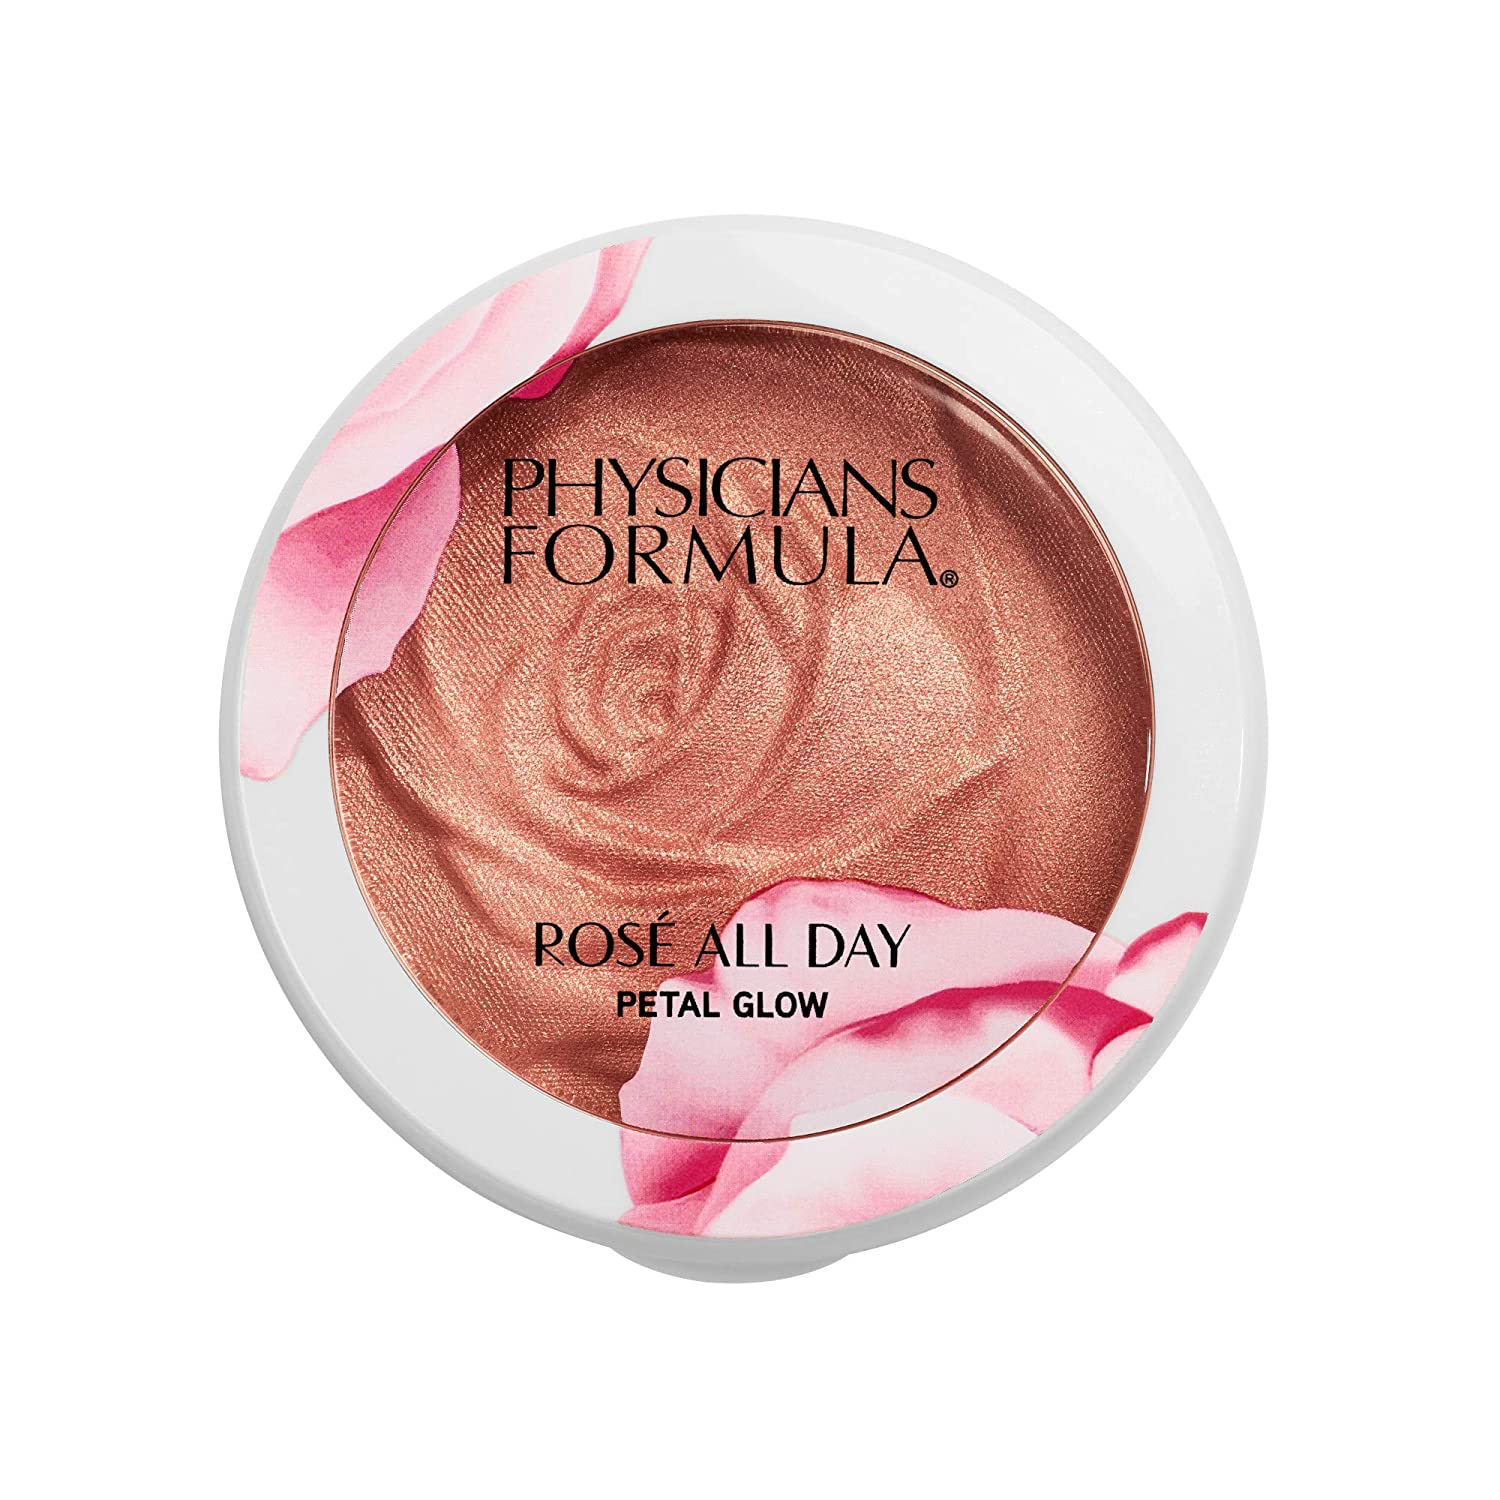 Physicians Formula Rose All Day Petal Glow, Shimmering Rose, 0.32 Ounce